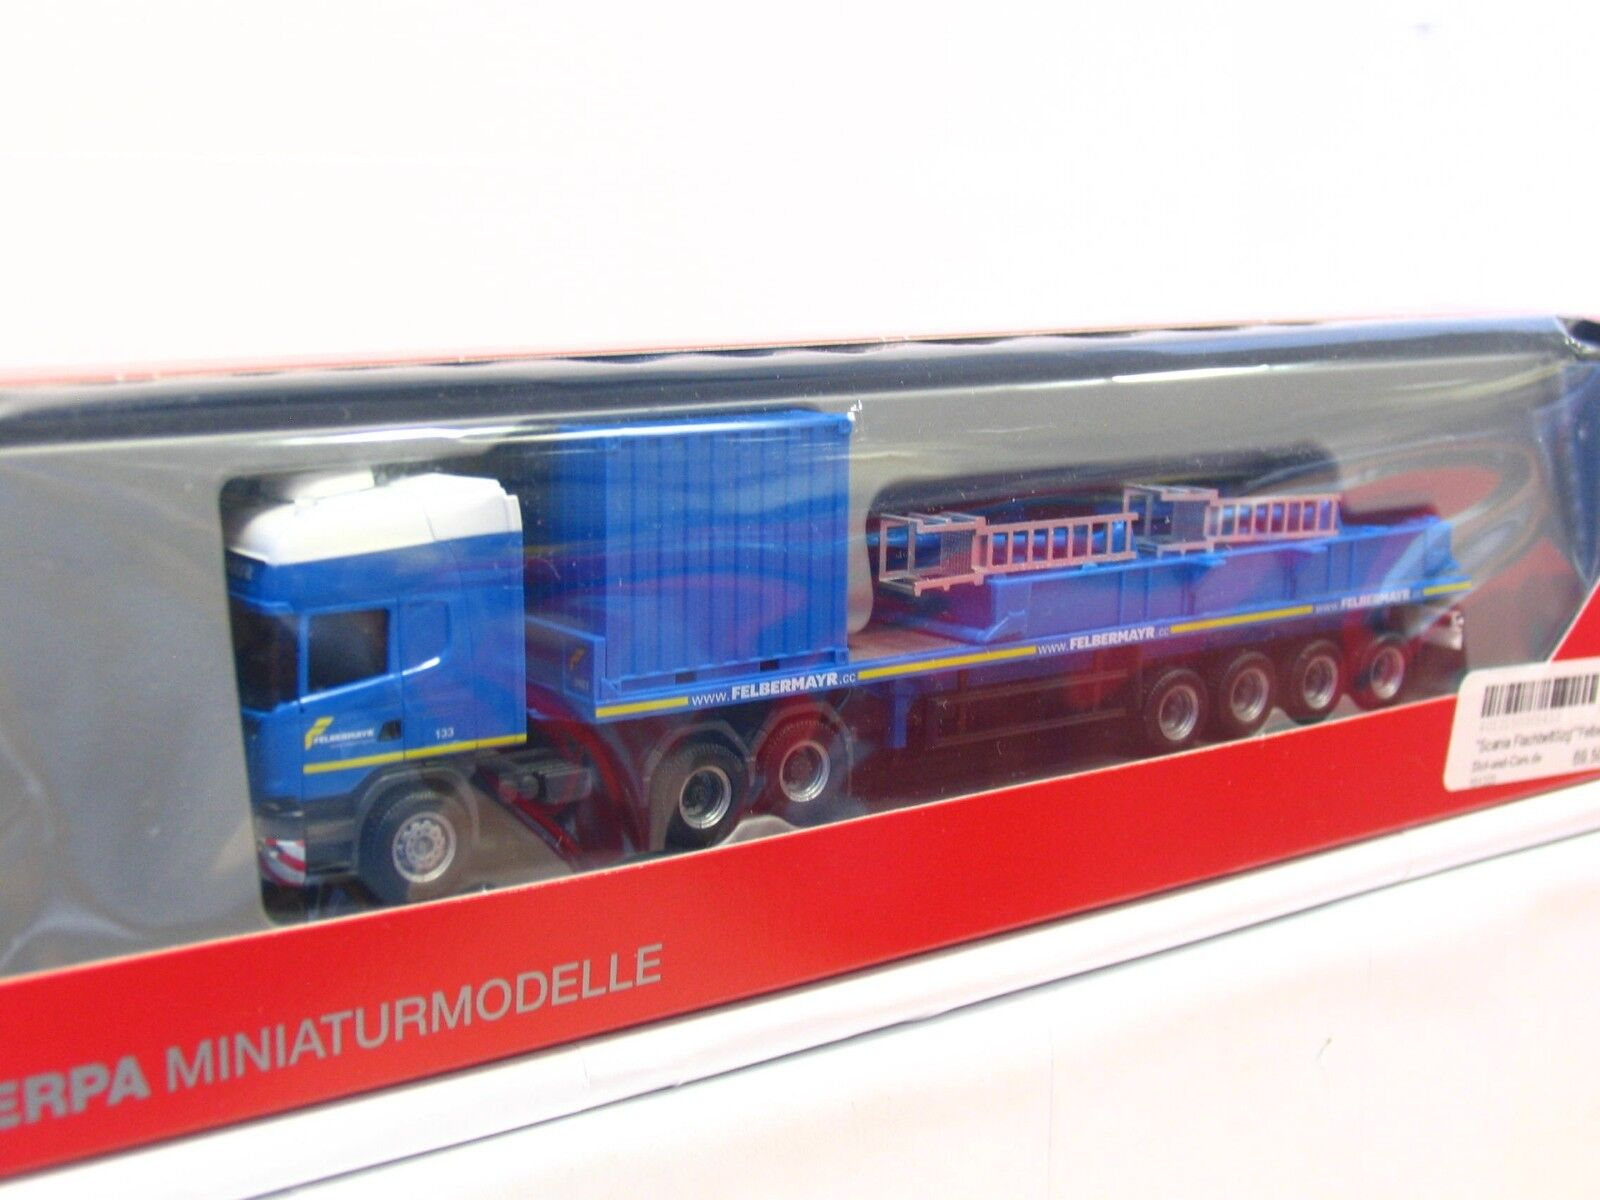 Herpa 1 87 305433 Scania R TL SZ container and pallet Felbermayr OVP (rb3954)